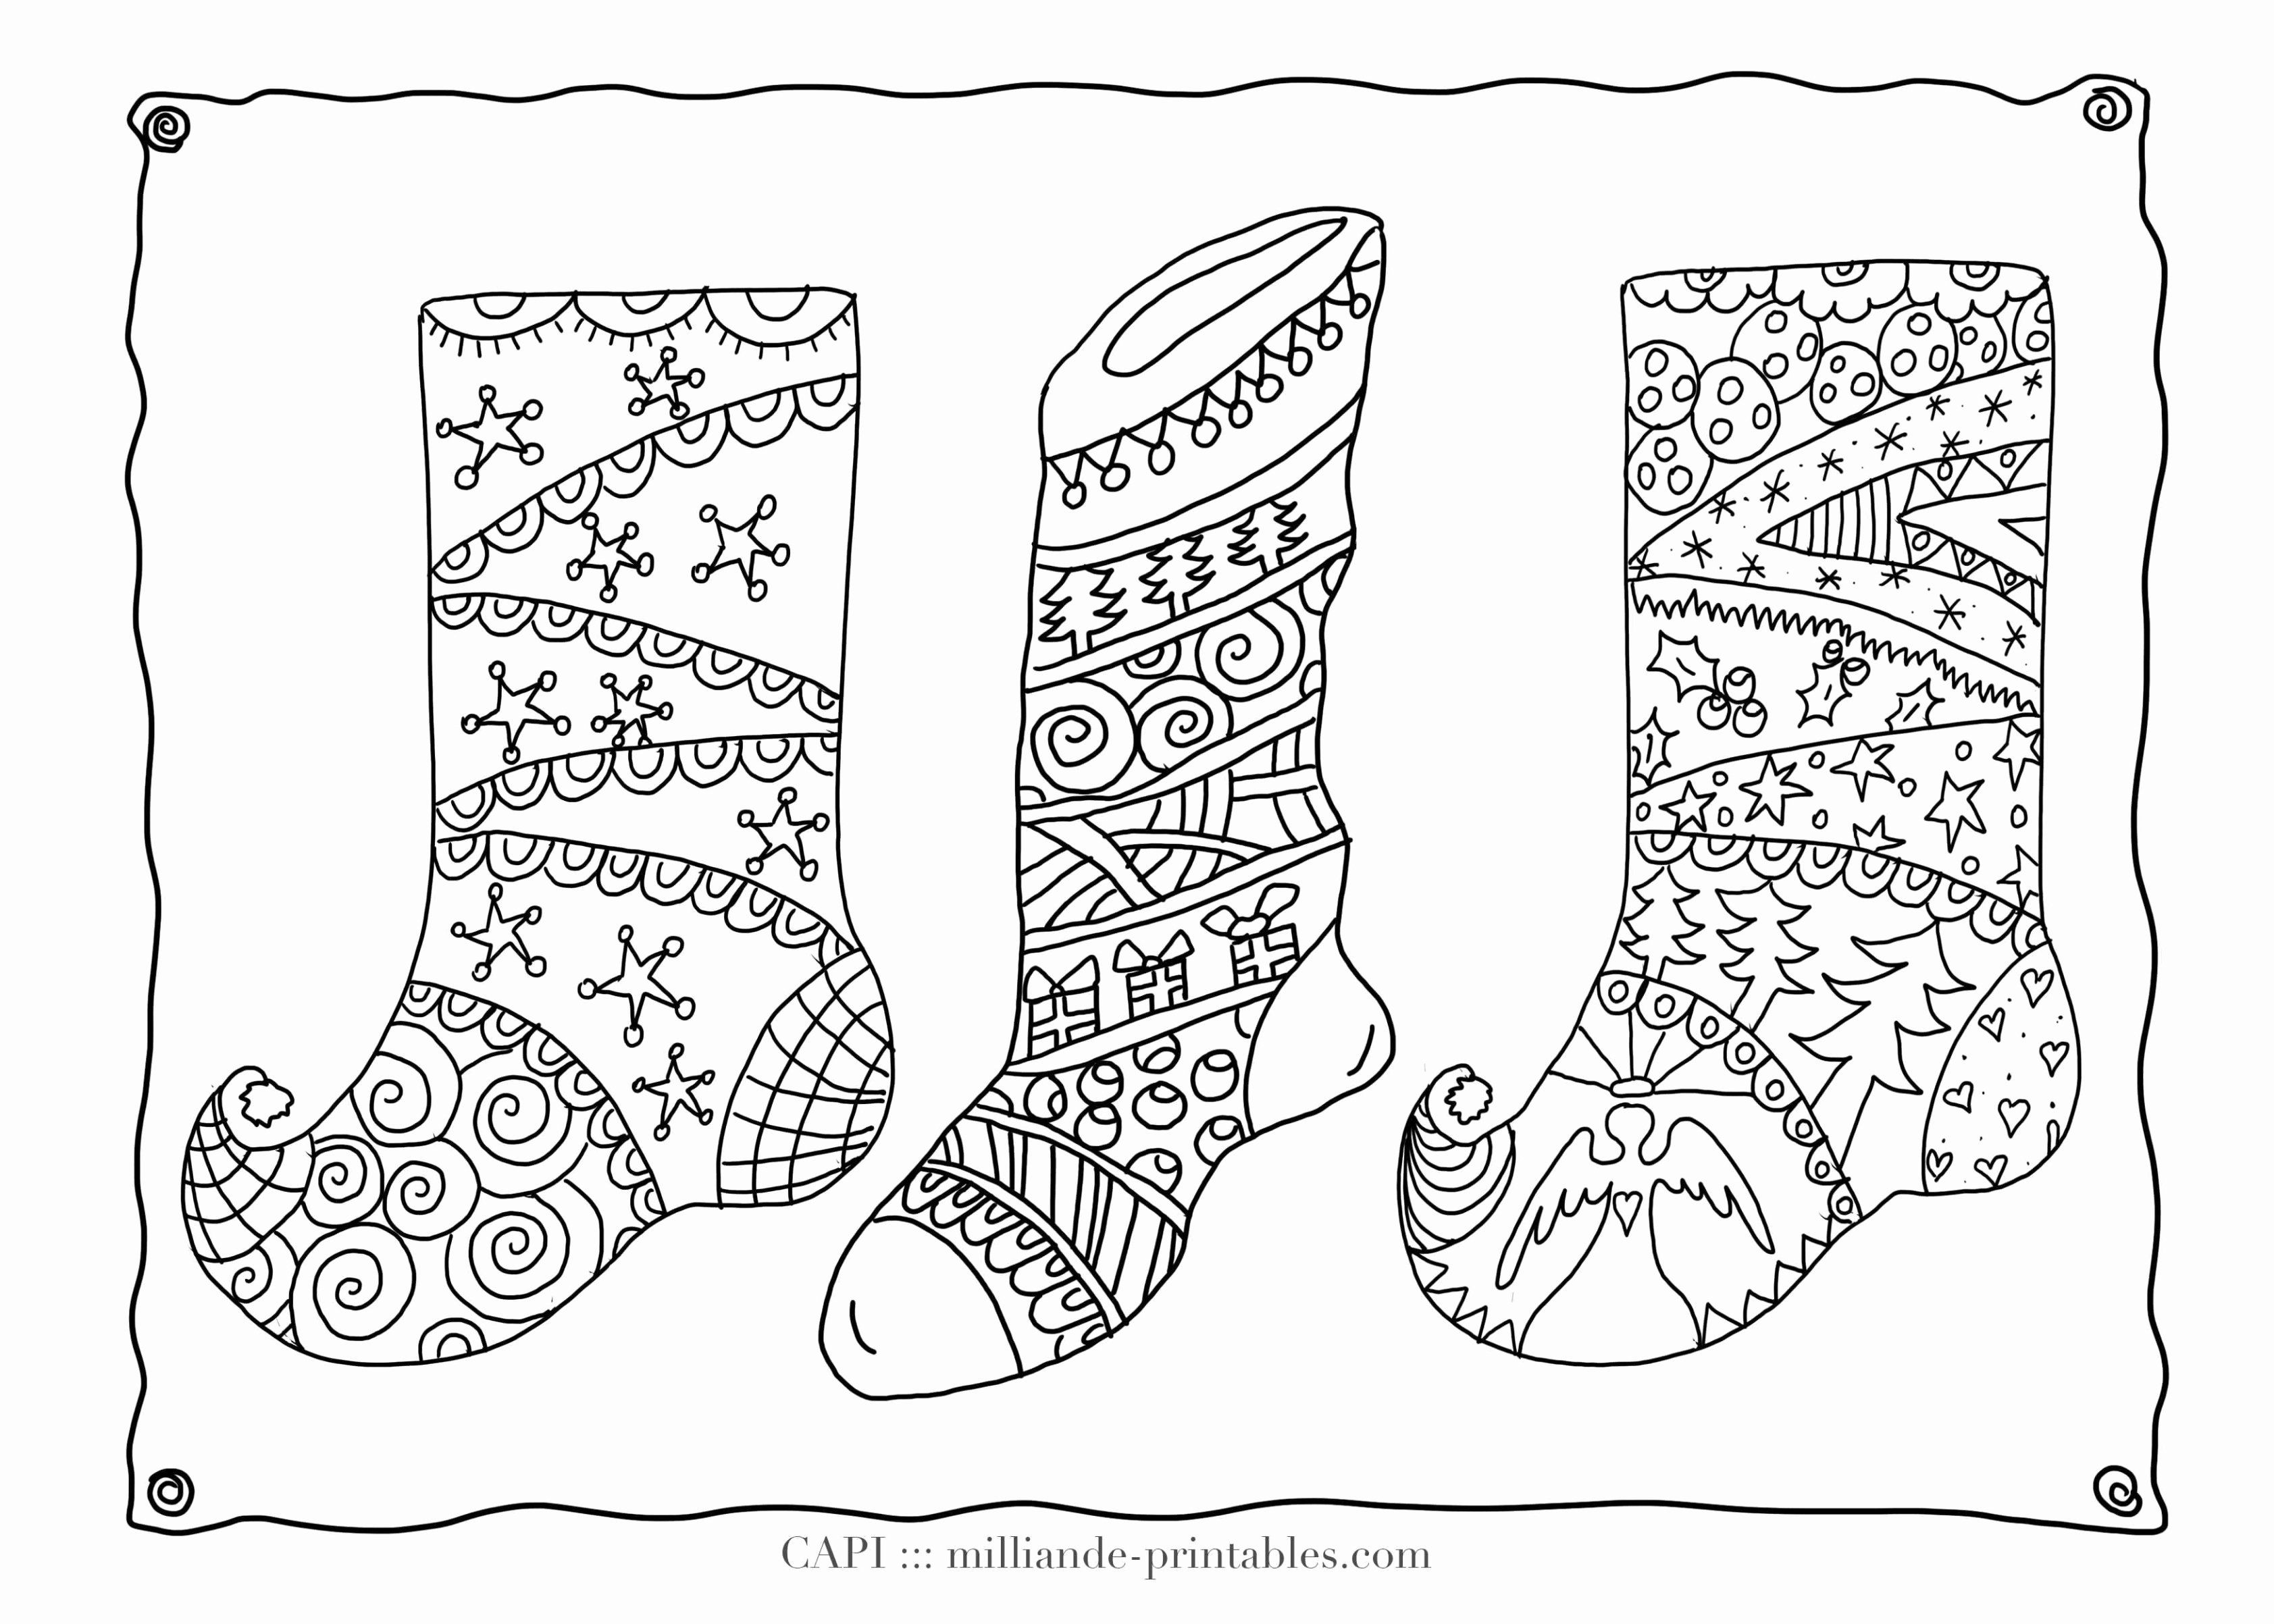 Toddler Christmas Coloring Pages Free Elegant Christmas Coloring Pages Birthday Coloring Pages Printable Christmas Coloring Pages Christmas Coloring Pages